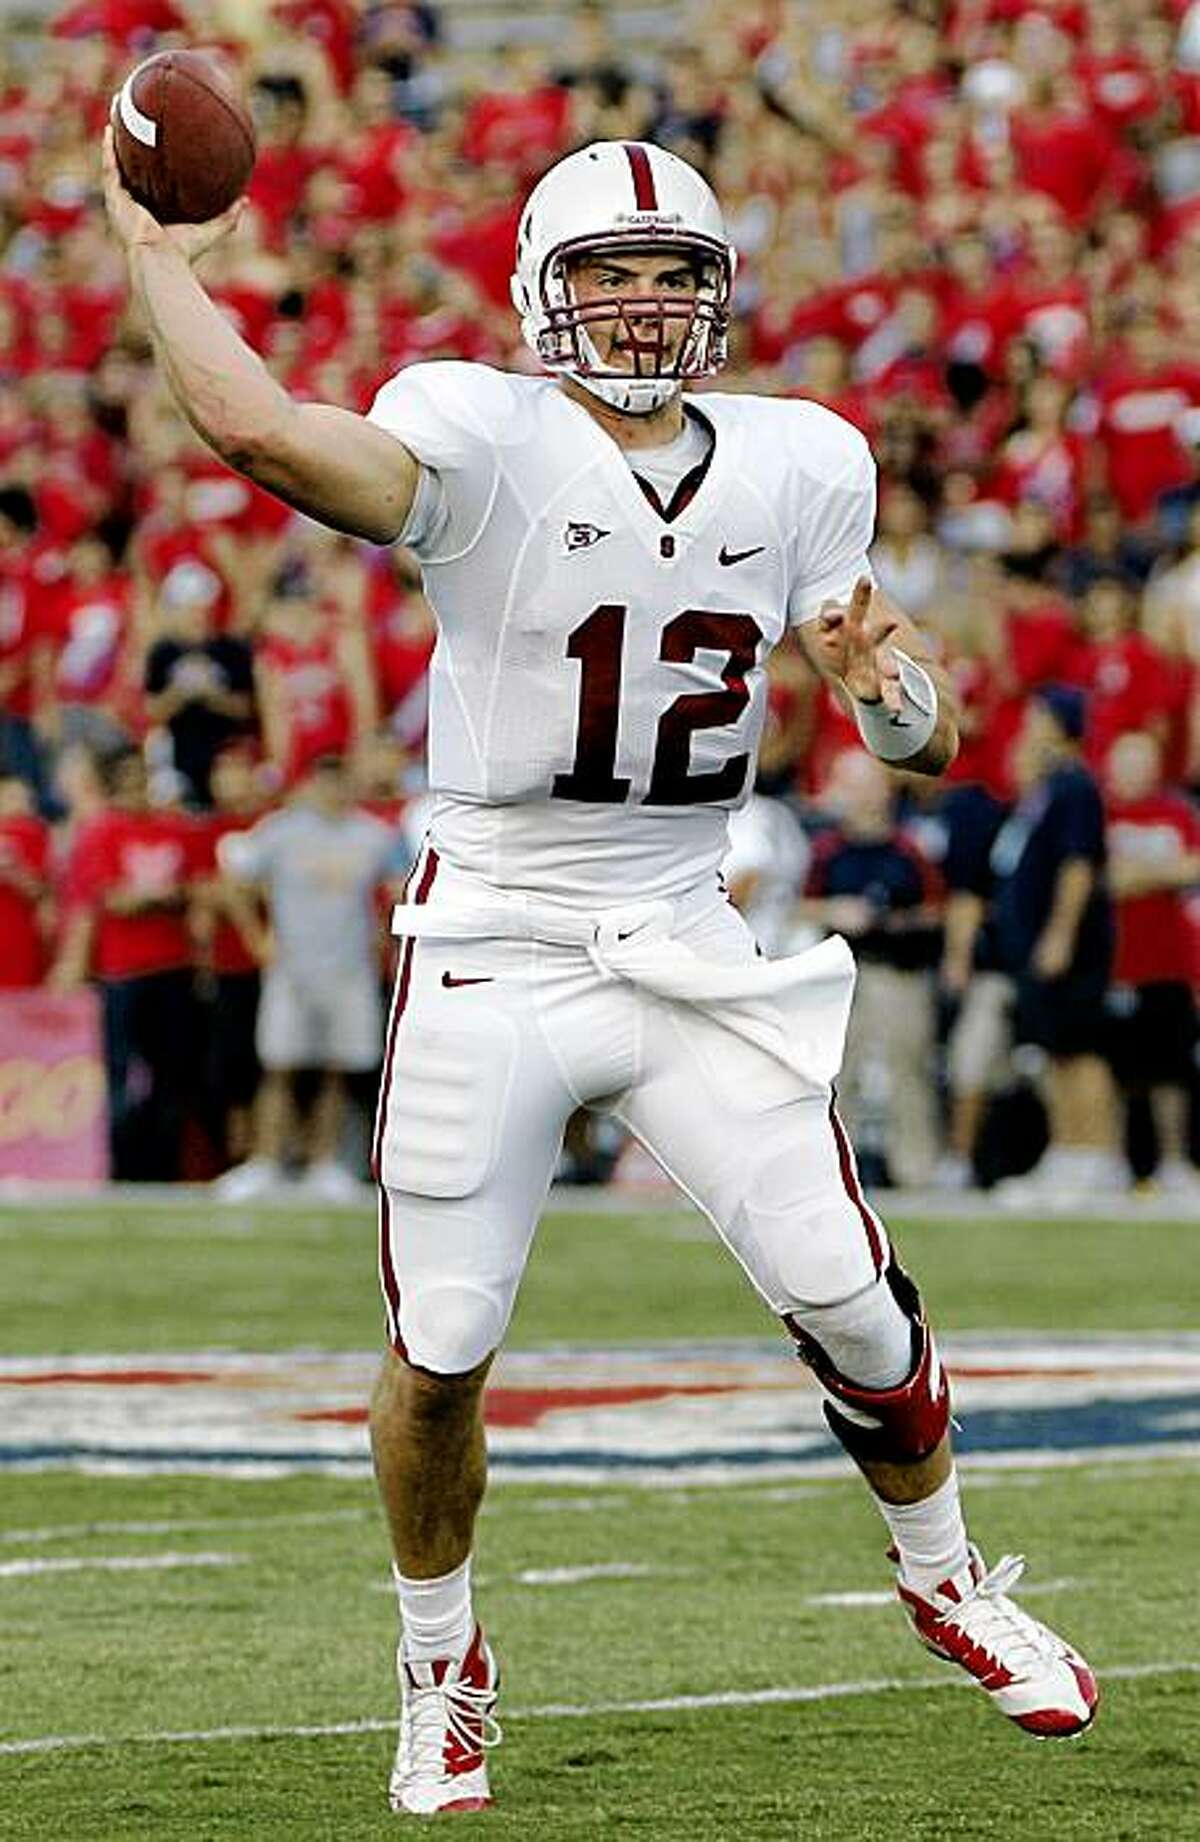 Stanford's quarterback Andrew Luck (12) throws the ball against Arizona in the first half of an NCAA college football game at Arizona Stadium in Tucson, Ariz., Saturday, Oct. 17, 2009. (AP Photo/Wily Low)